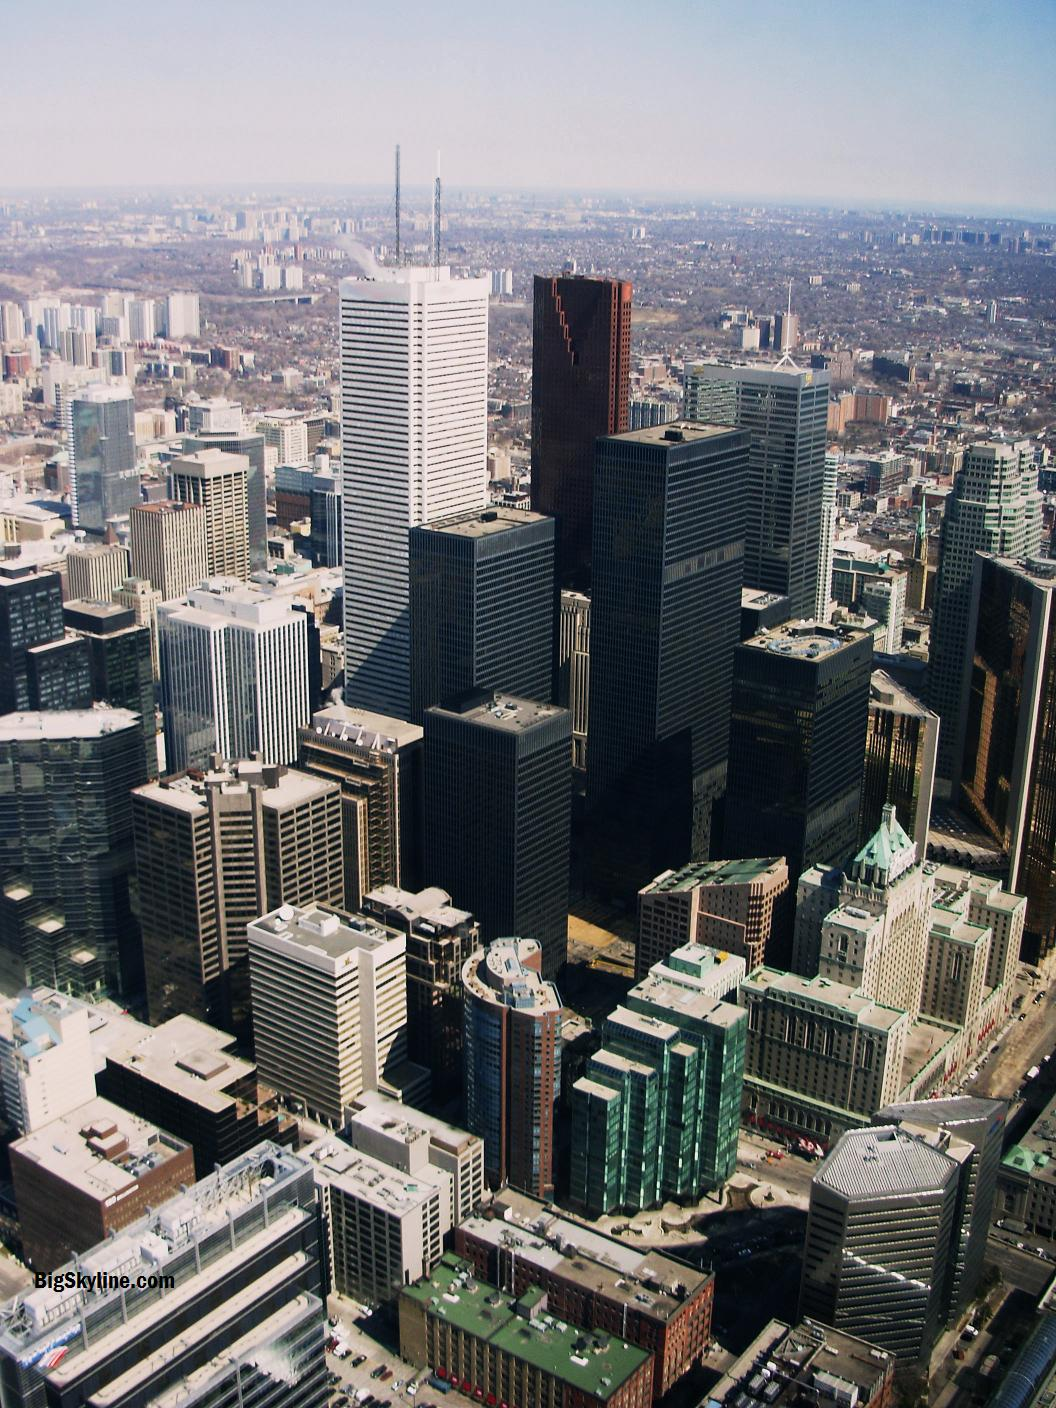 Photo of Toronto's Skyline from the air